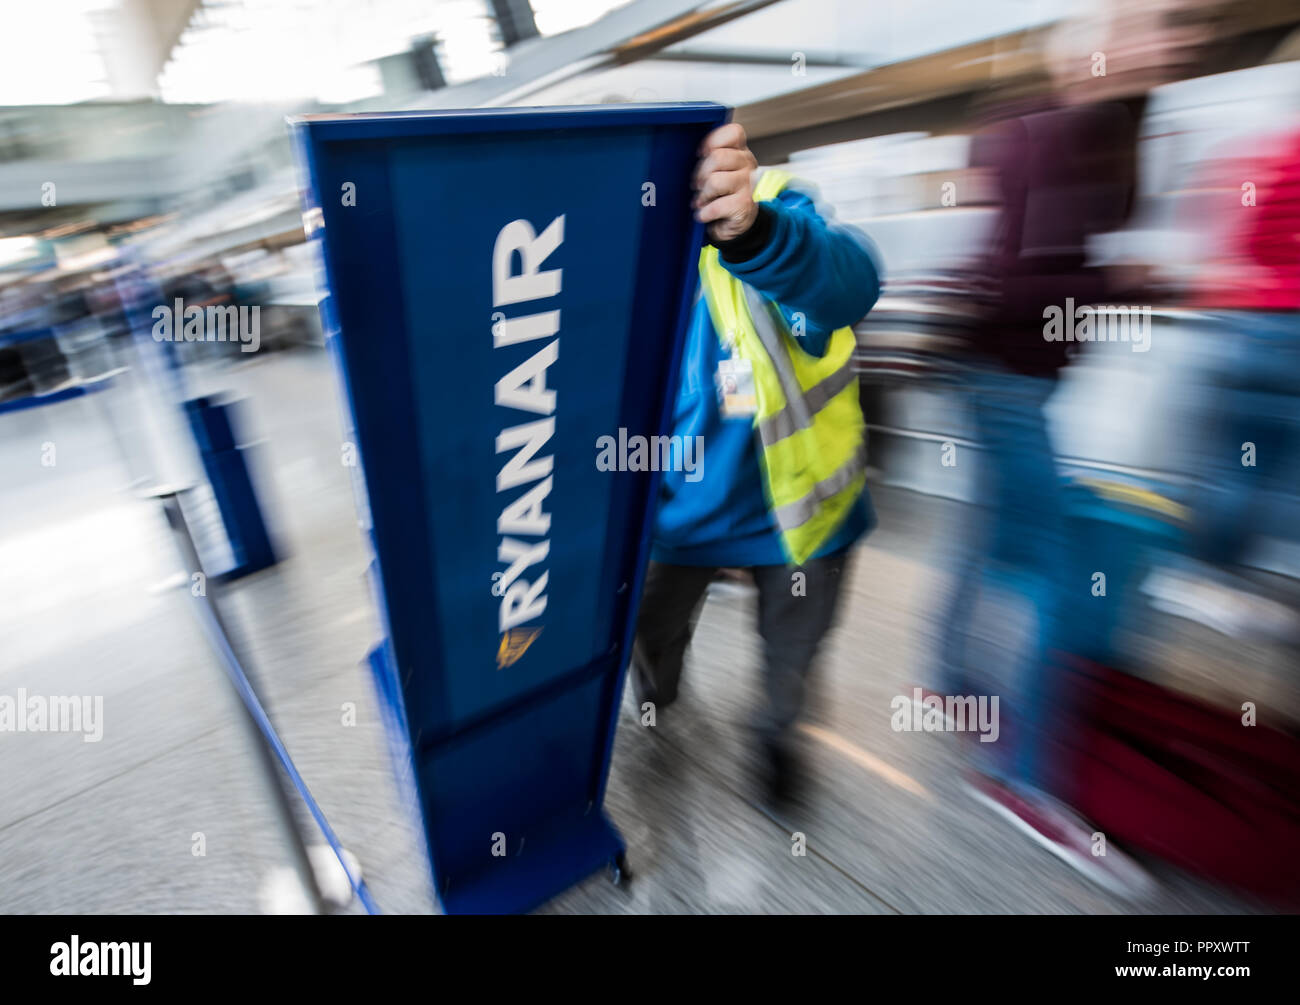 28 September 2018, Hessen, Frankfurt_Main: An airport employee moves a Ryanair display. Trade unions in several European countries have called for strikes at low-cost airline Ryanair. In Germany, the pilots of the Cockpit Association (VC) and the flight attendants organized at Verdi participate. Photo: Andreas Arnold/dpa - Stock Image